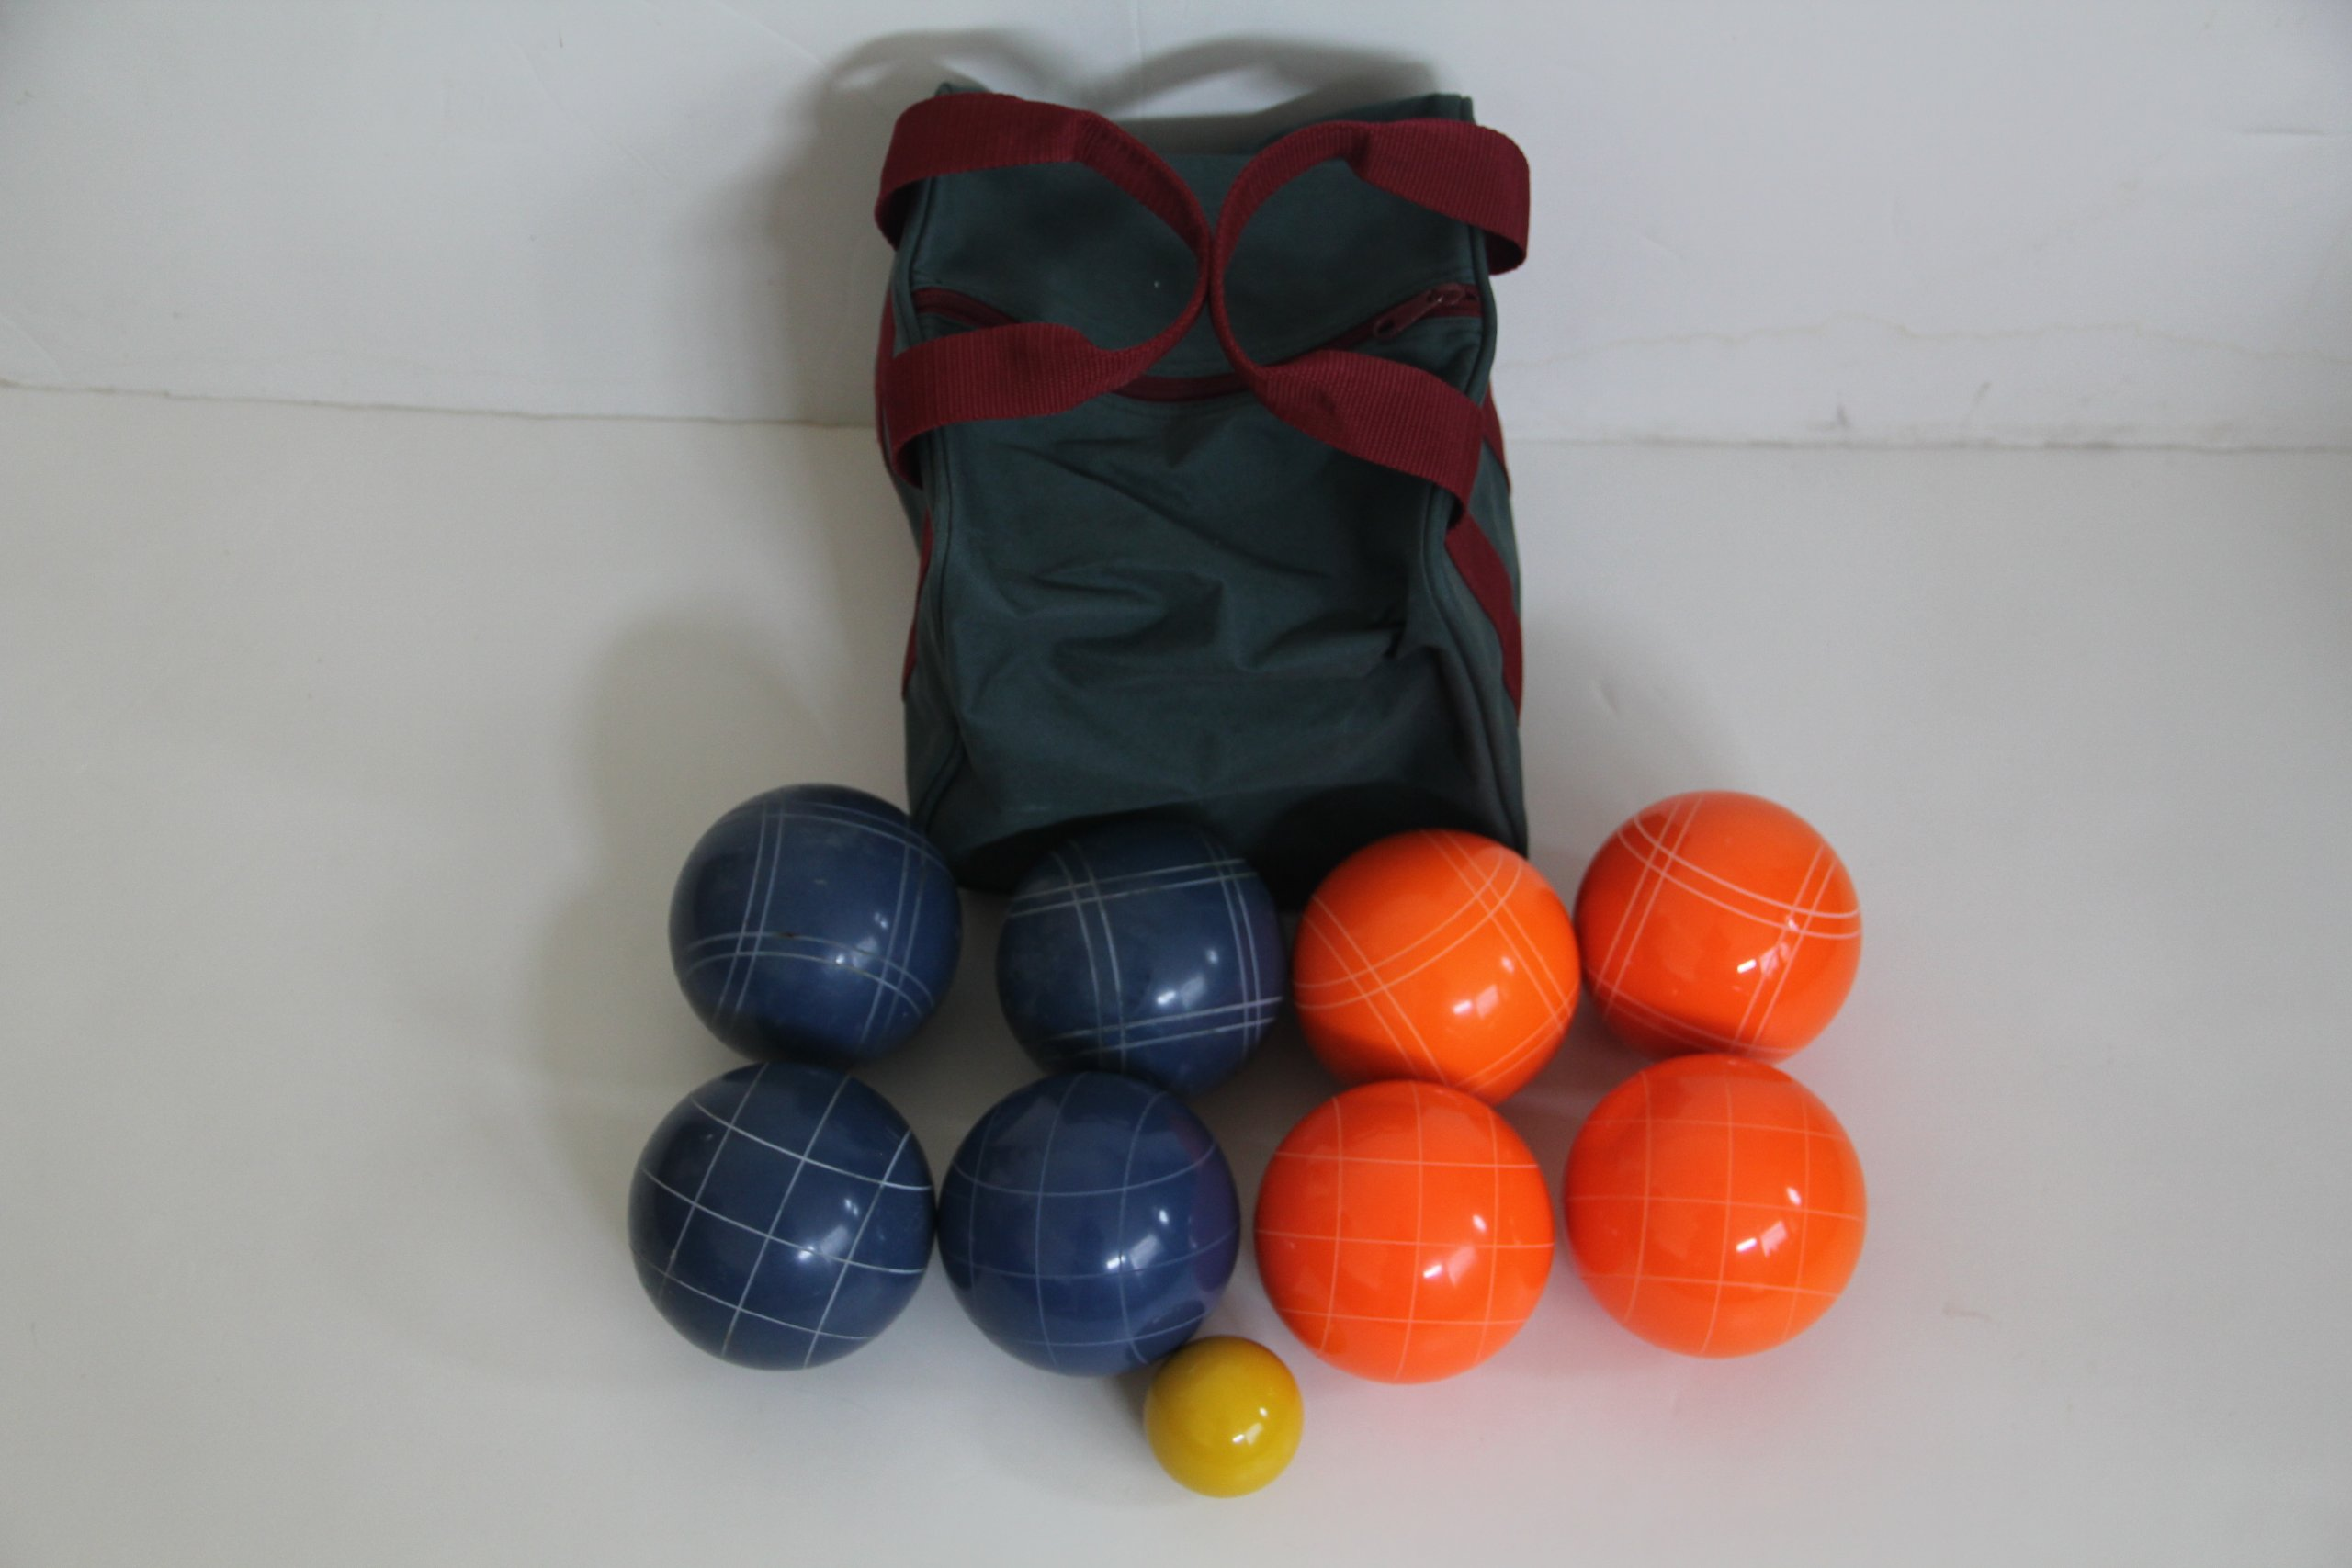 Epco Premium Quality Tournament Set - 110mm Blue and Orange Bocce Balls [Toy] by EPCO